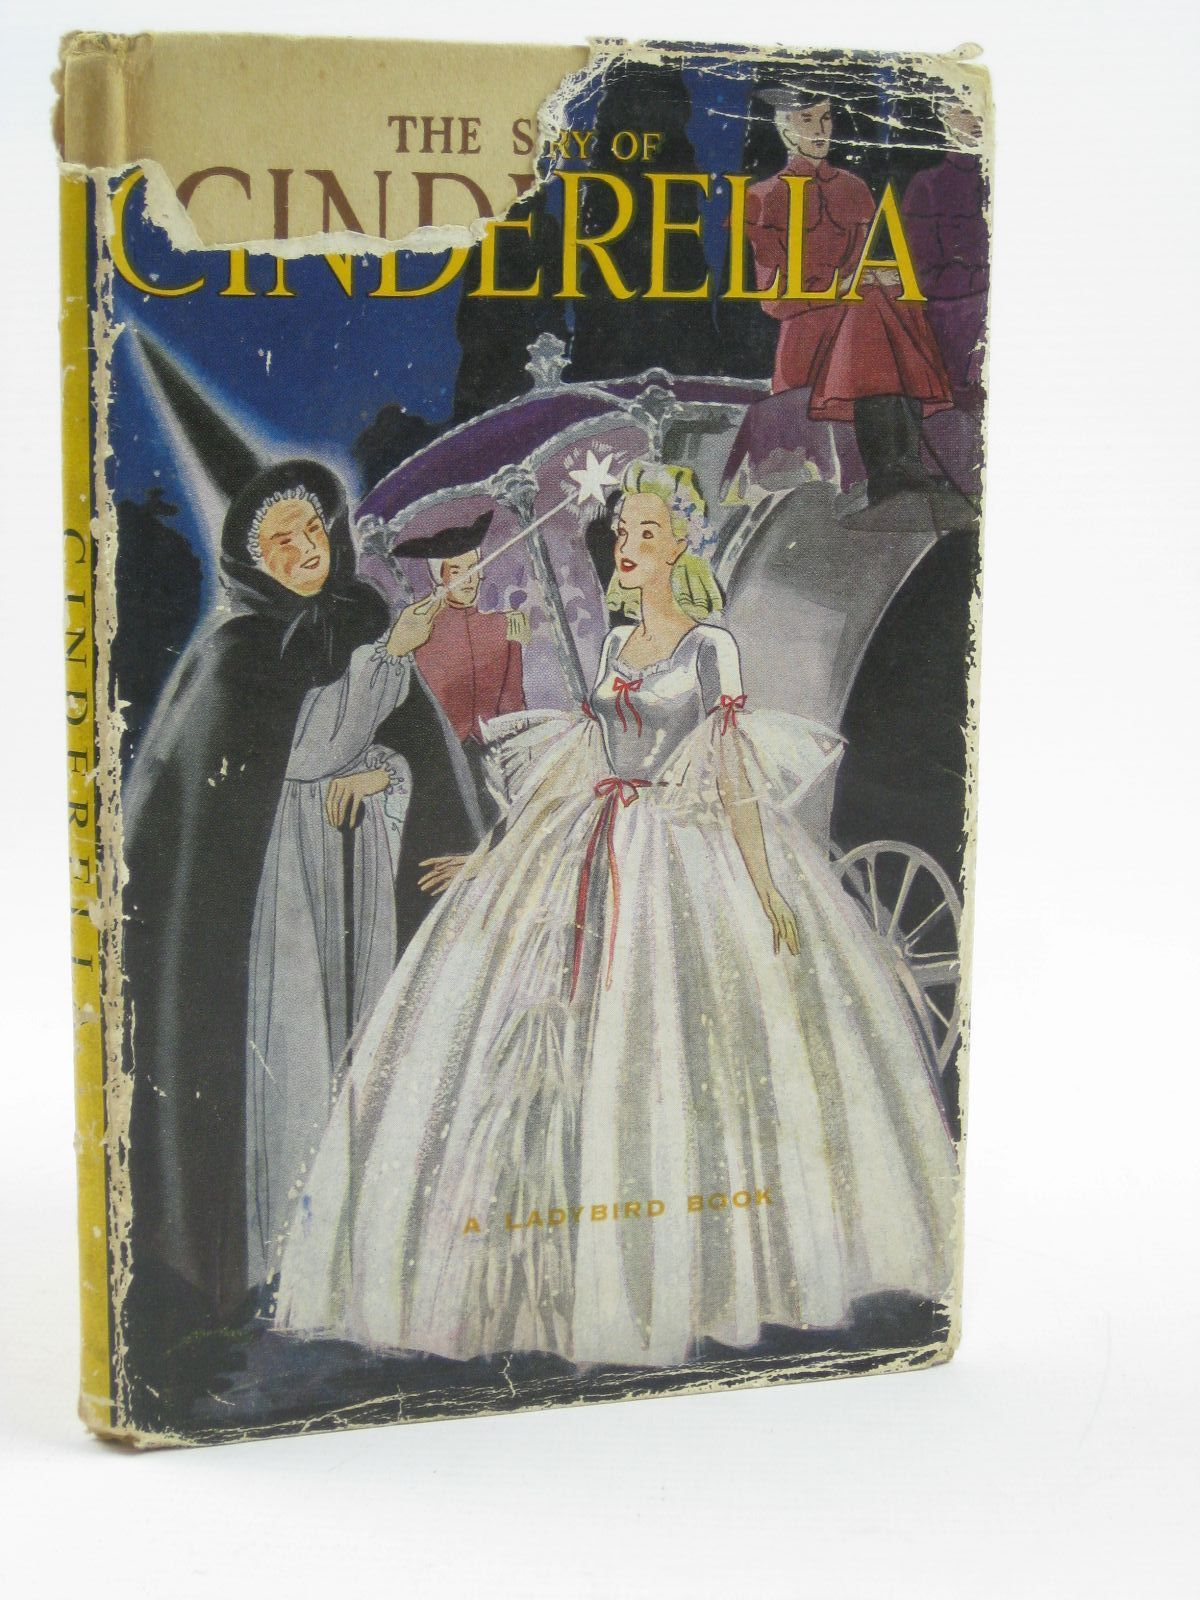 Photo of THE STORY OF CINDERELLA written by Levy, Muriel illustrated by Bowmar, Evelyn published by Wills & Hepworth Ltd. (STOCK CODE: 1406618)  for sale by Stella & Rose's Books